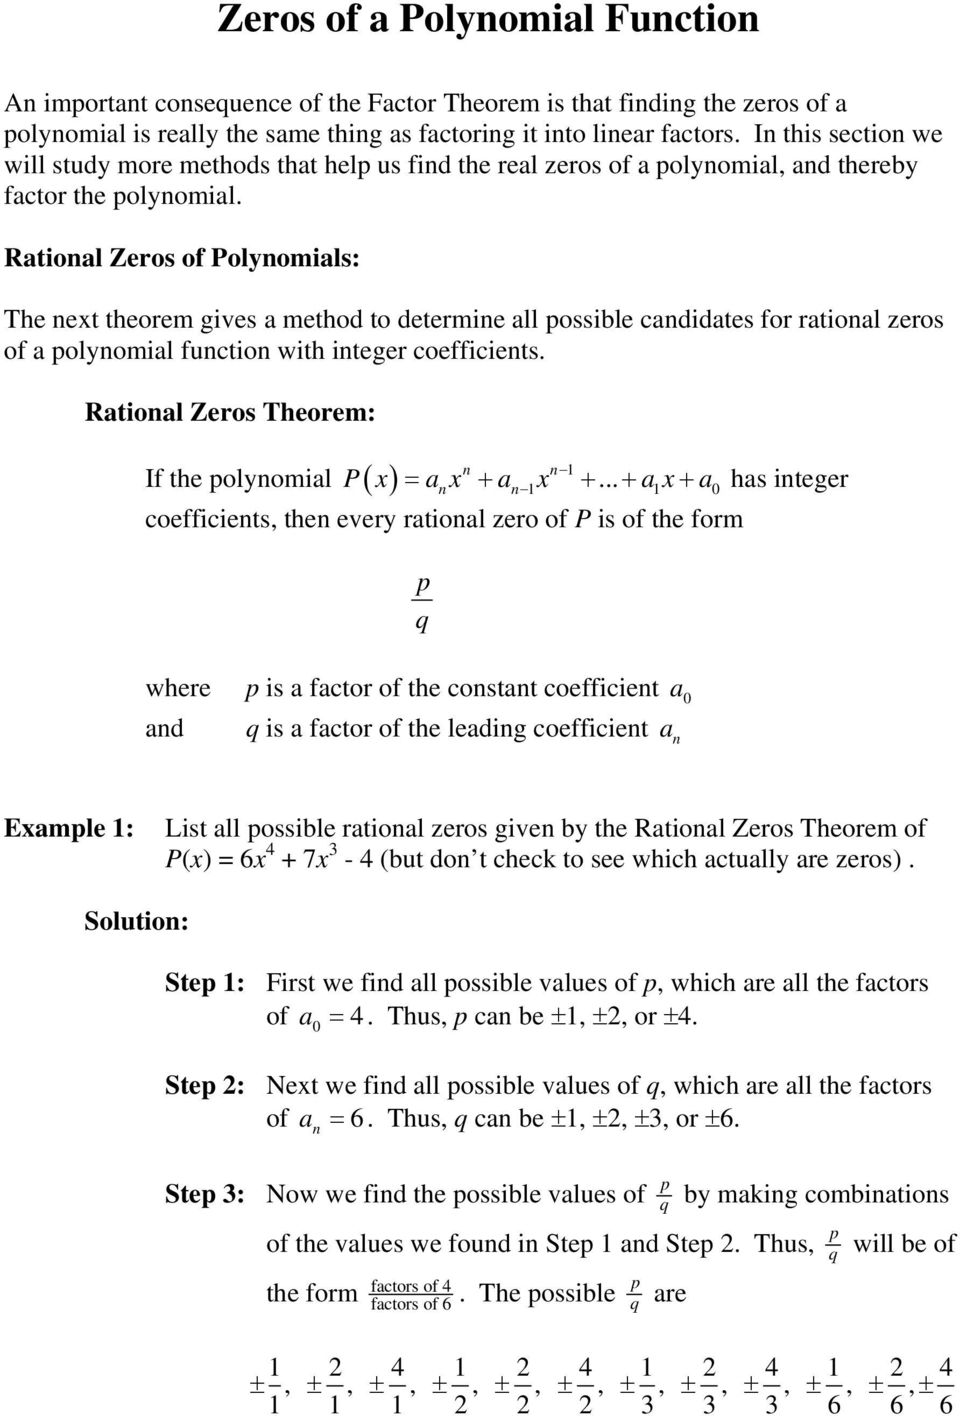 Rational Zeros of Polynomials: The next theorem gives a method to determine all possible candidates for rational zeros of a polynomial function with integer coefficients.